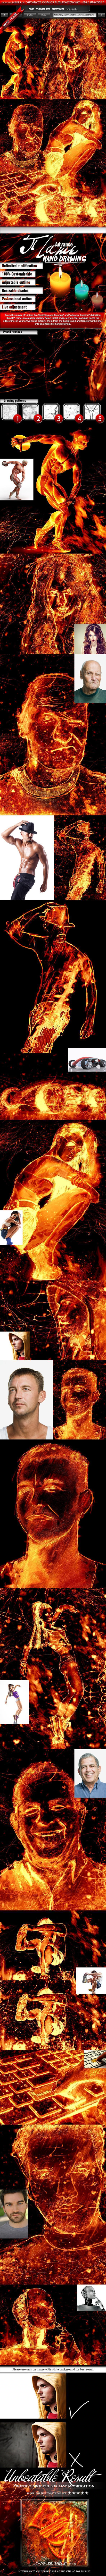 Abstract Fiery Flame Photo Effect Photoshop Action